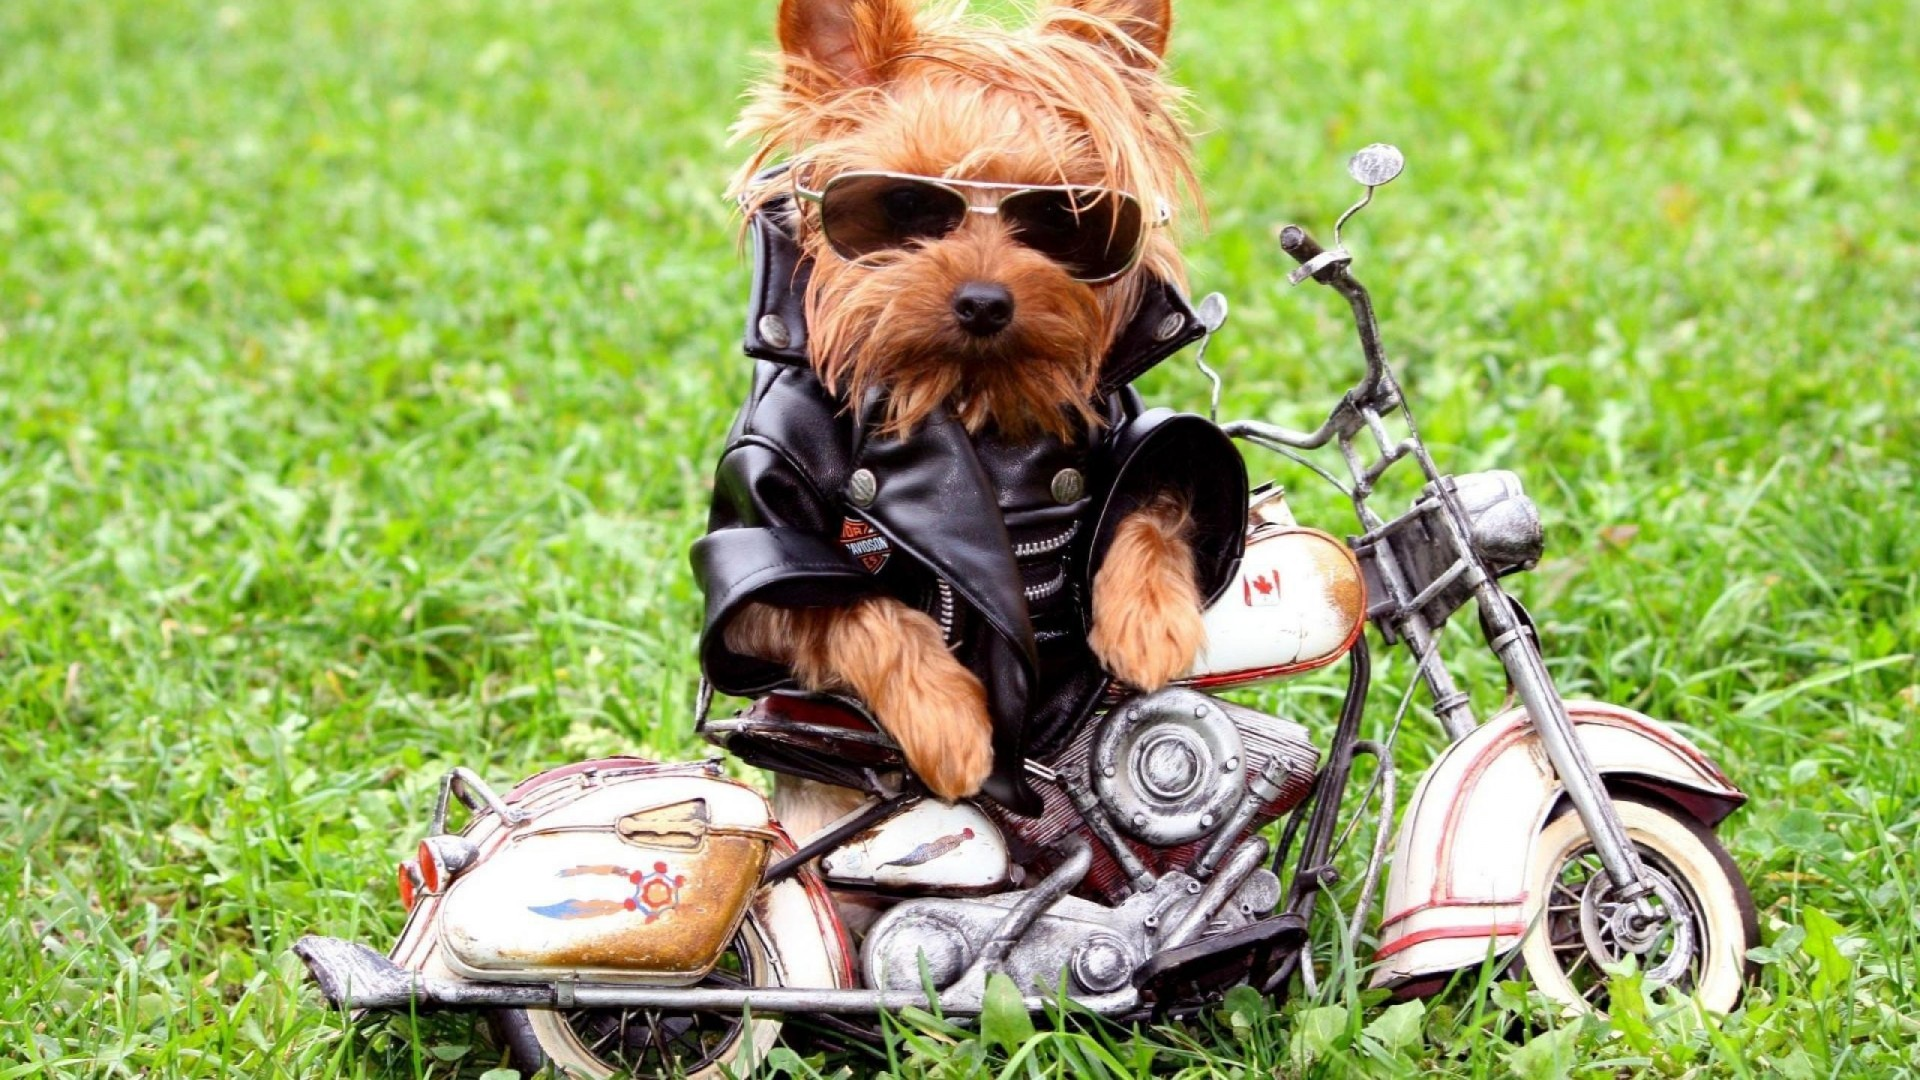 Dog Funny HD Wallpapers Download Desktop Wallpaper Images 1920x1080